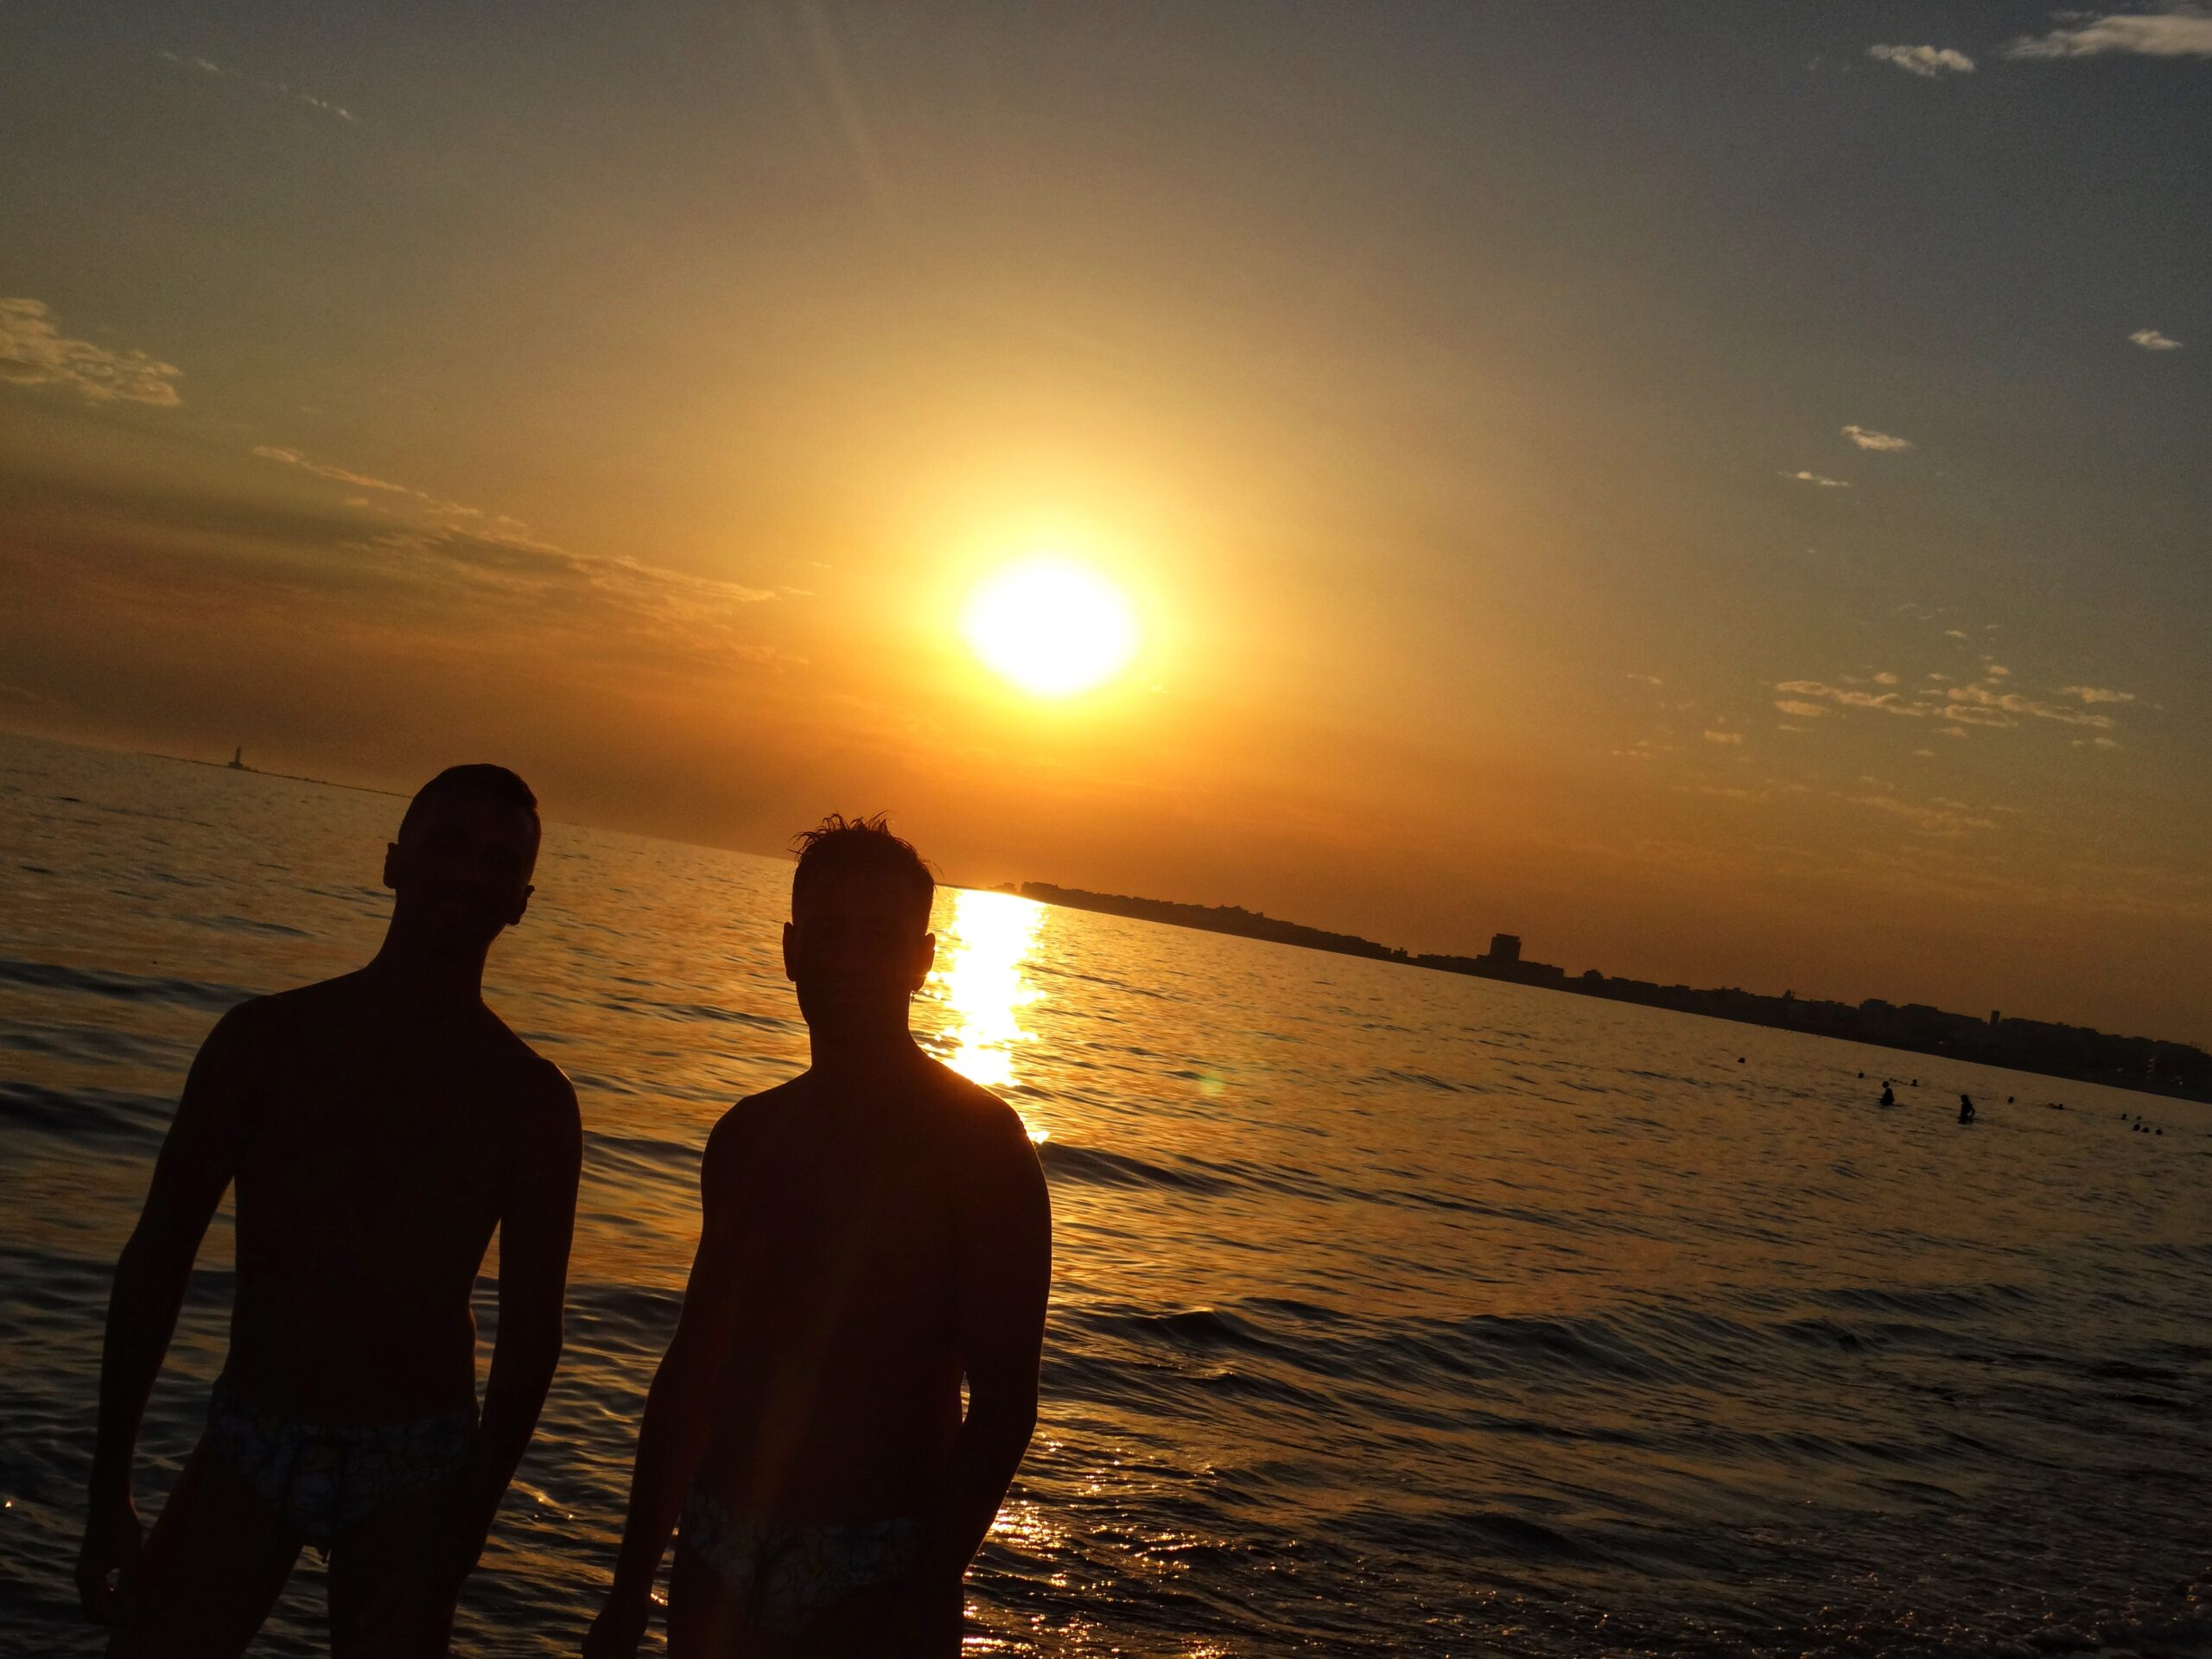 Gay Puglia - the Big Gay Podcast from Puglia. Serving up Puglia's finest food and destination recommendations. Sunset in Gallipoli.